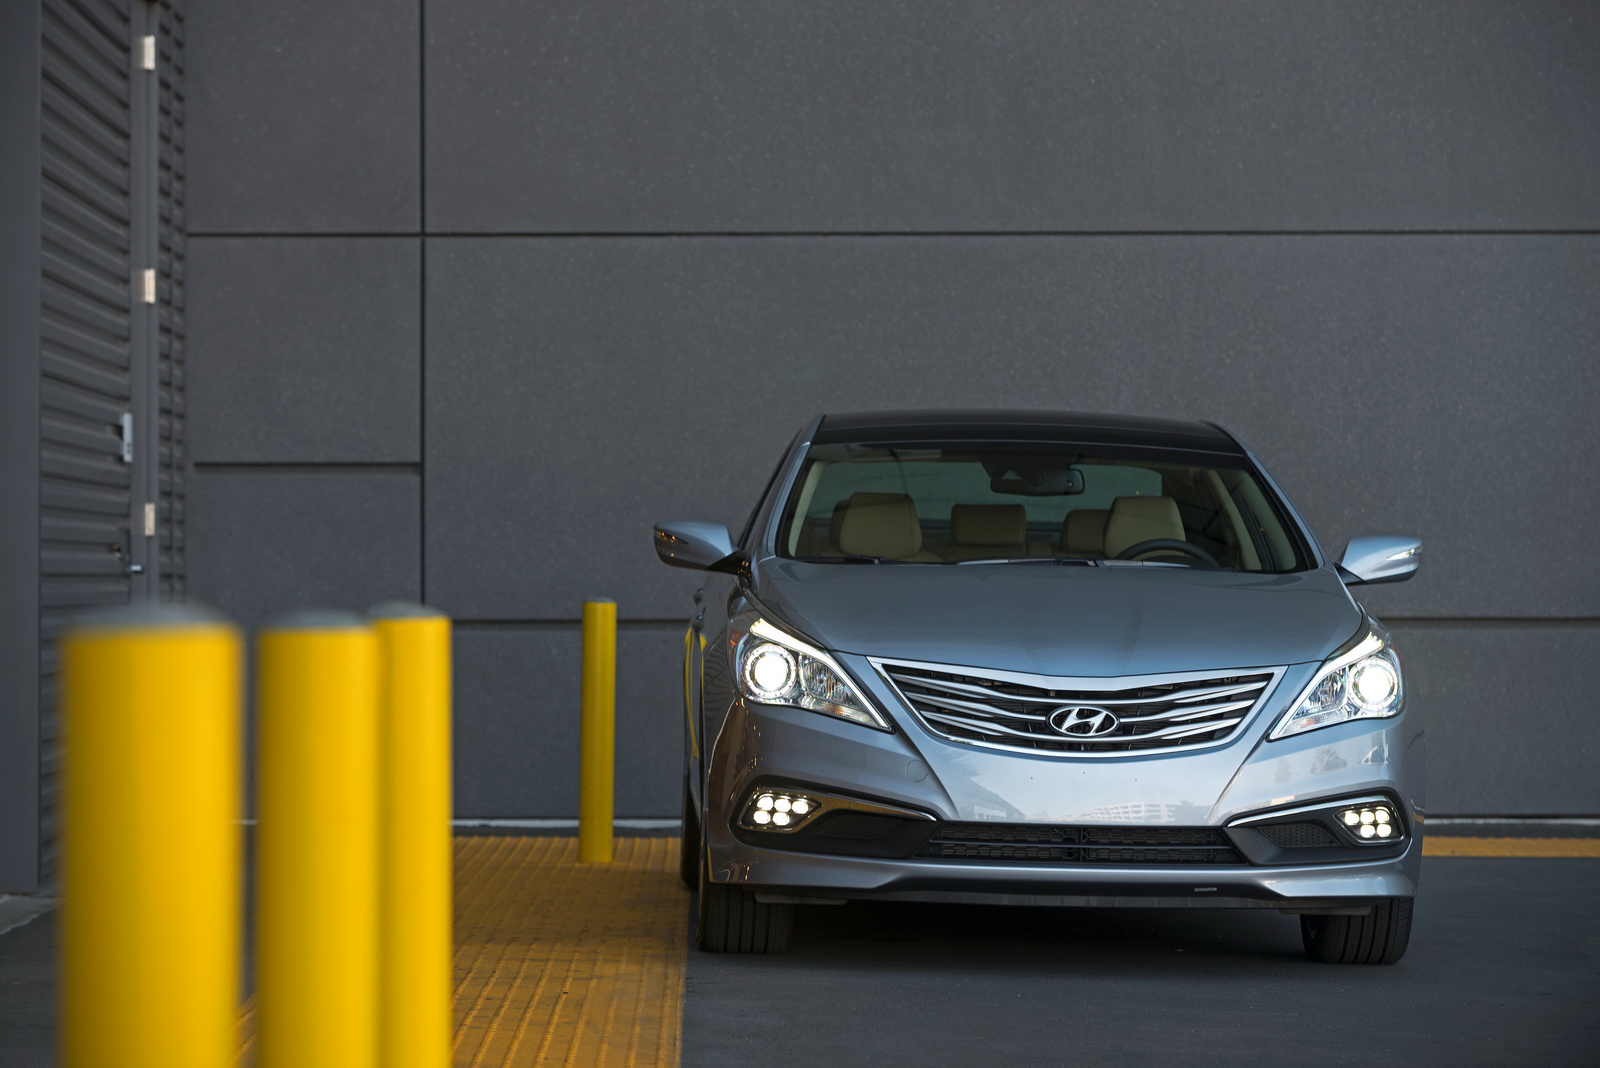 Hyundai Azera photo gallery - Autocar India